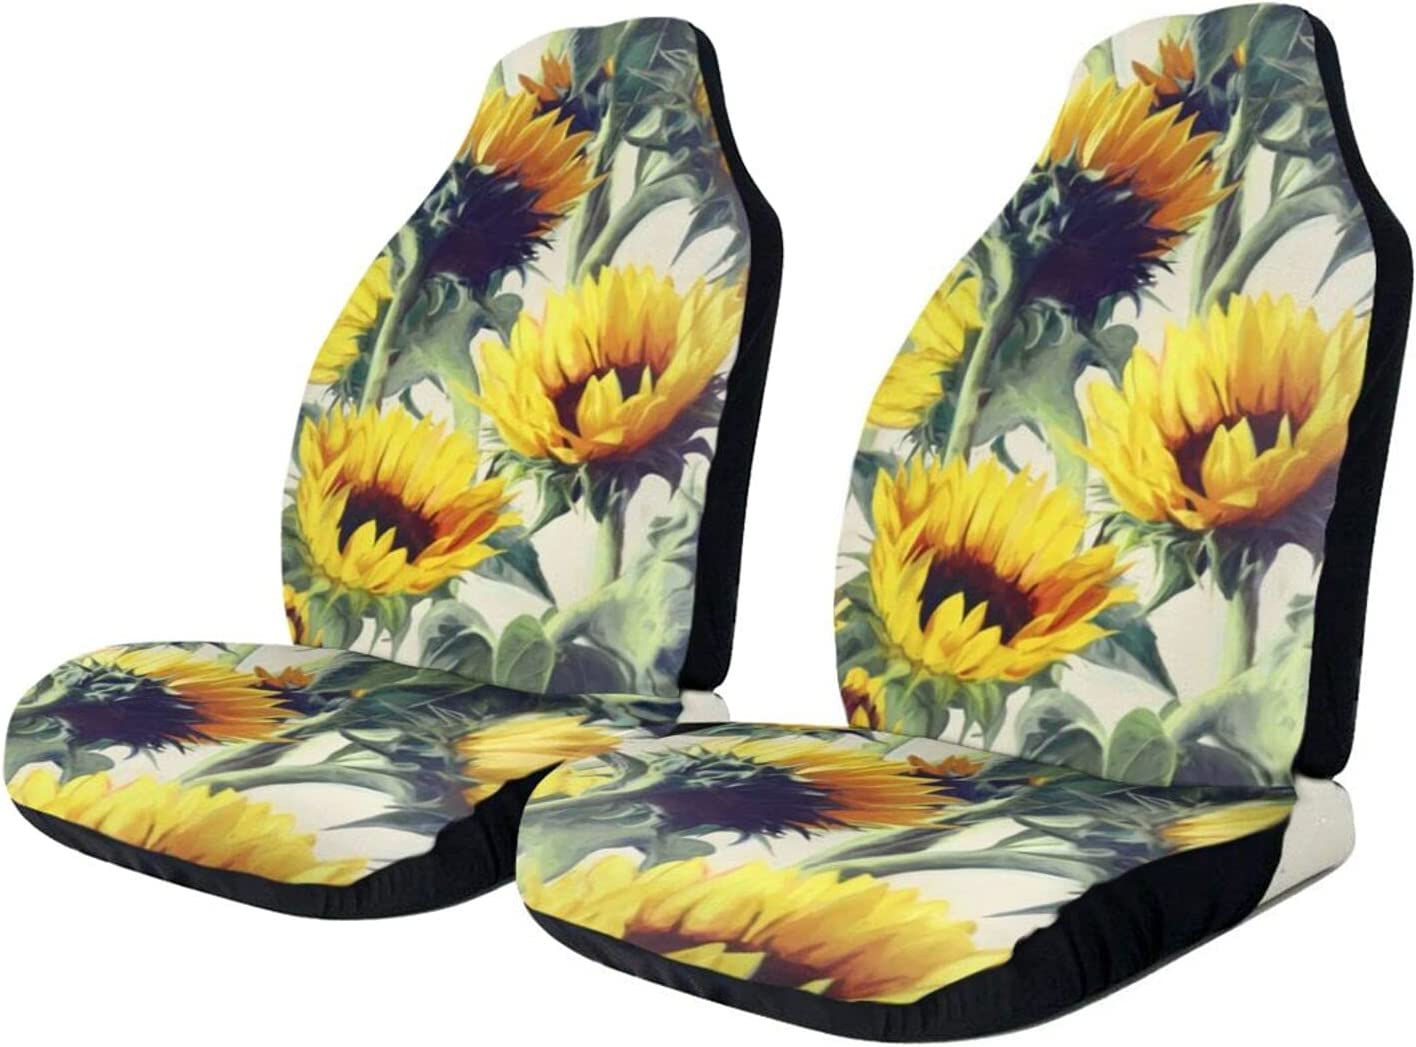 Universal Car Seat Cover 1pc SUV 2pcs for Front low-pricing New products, world's highest quality popular! Covers